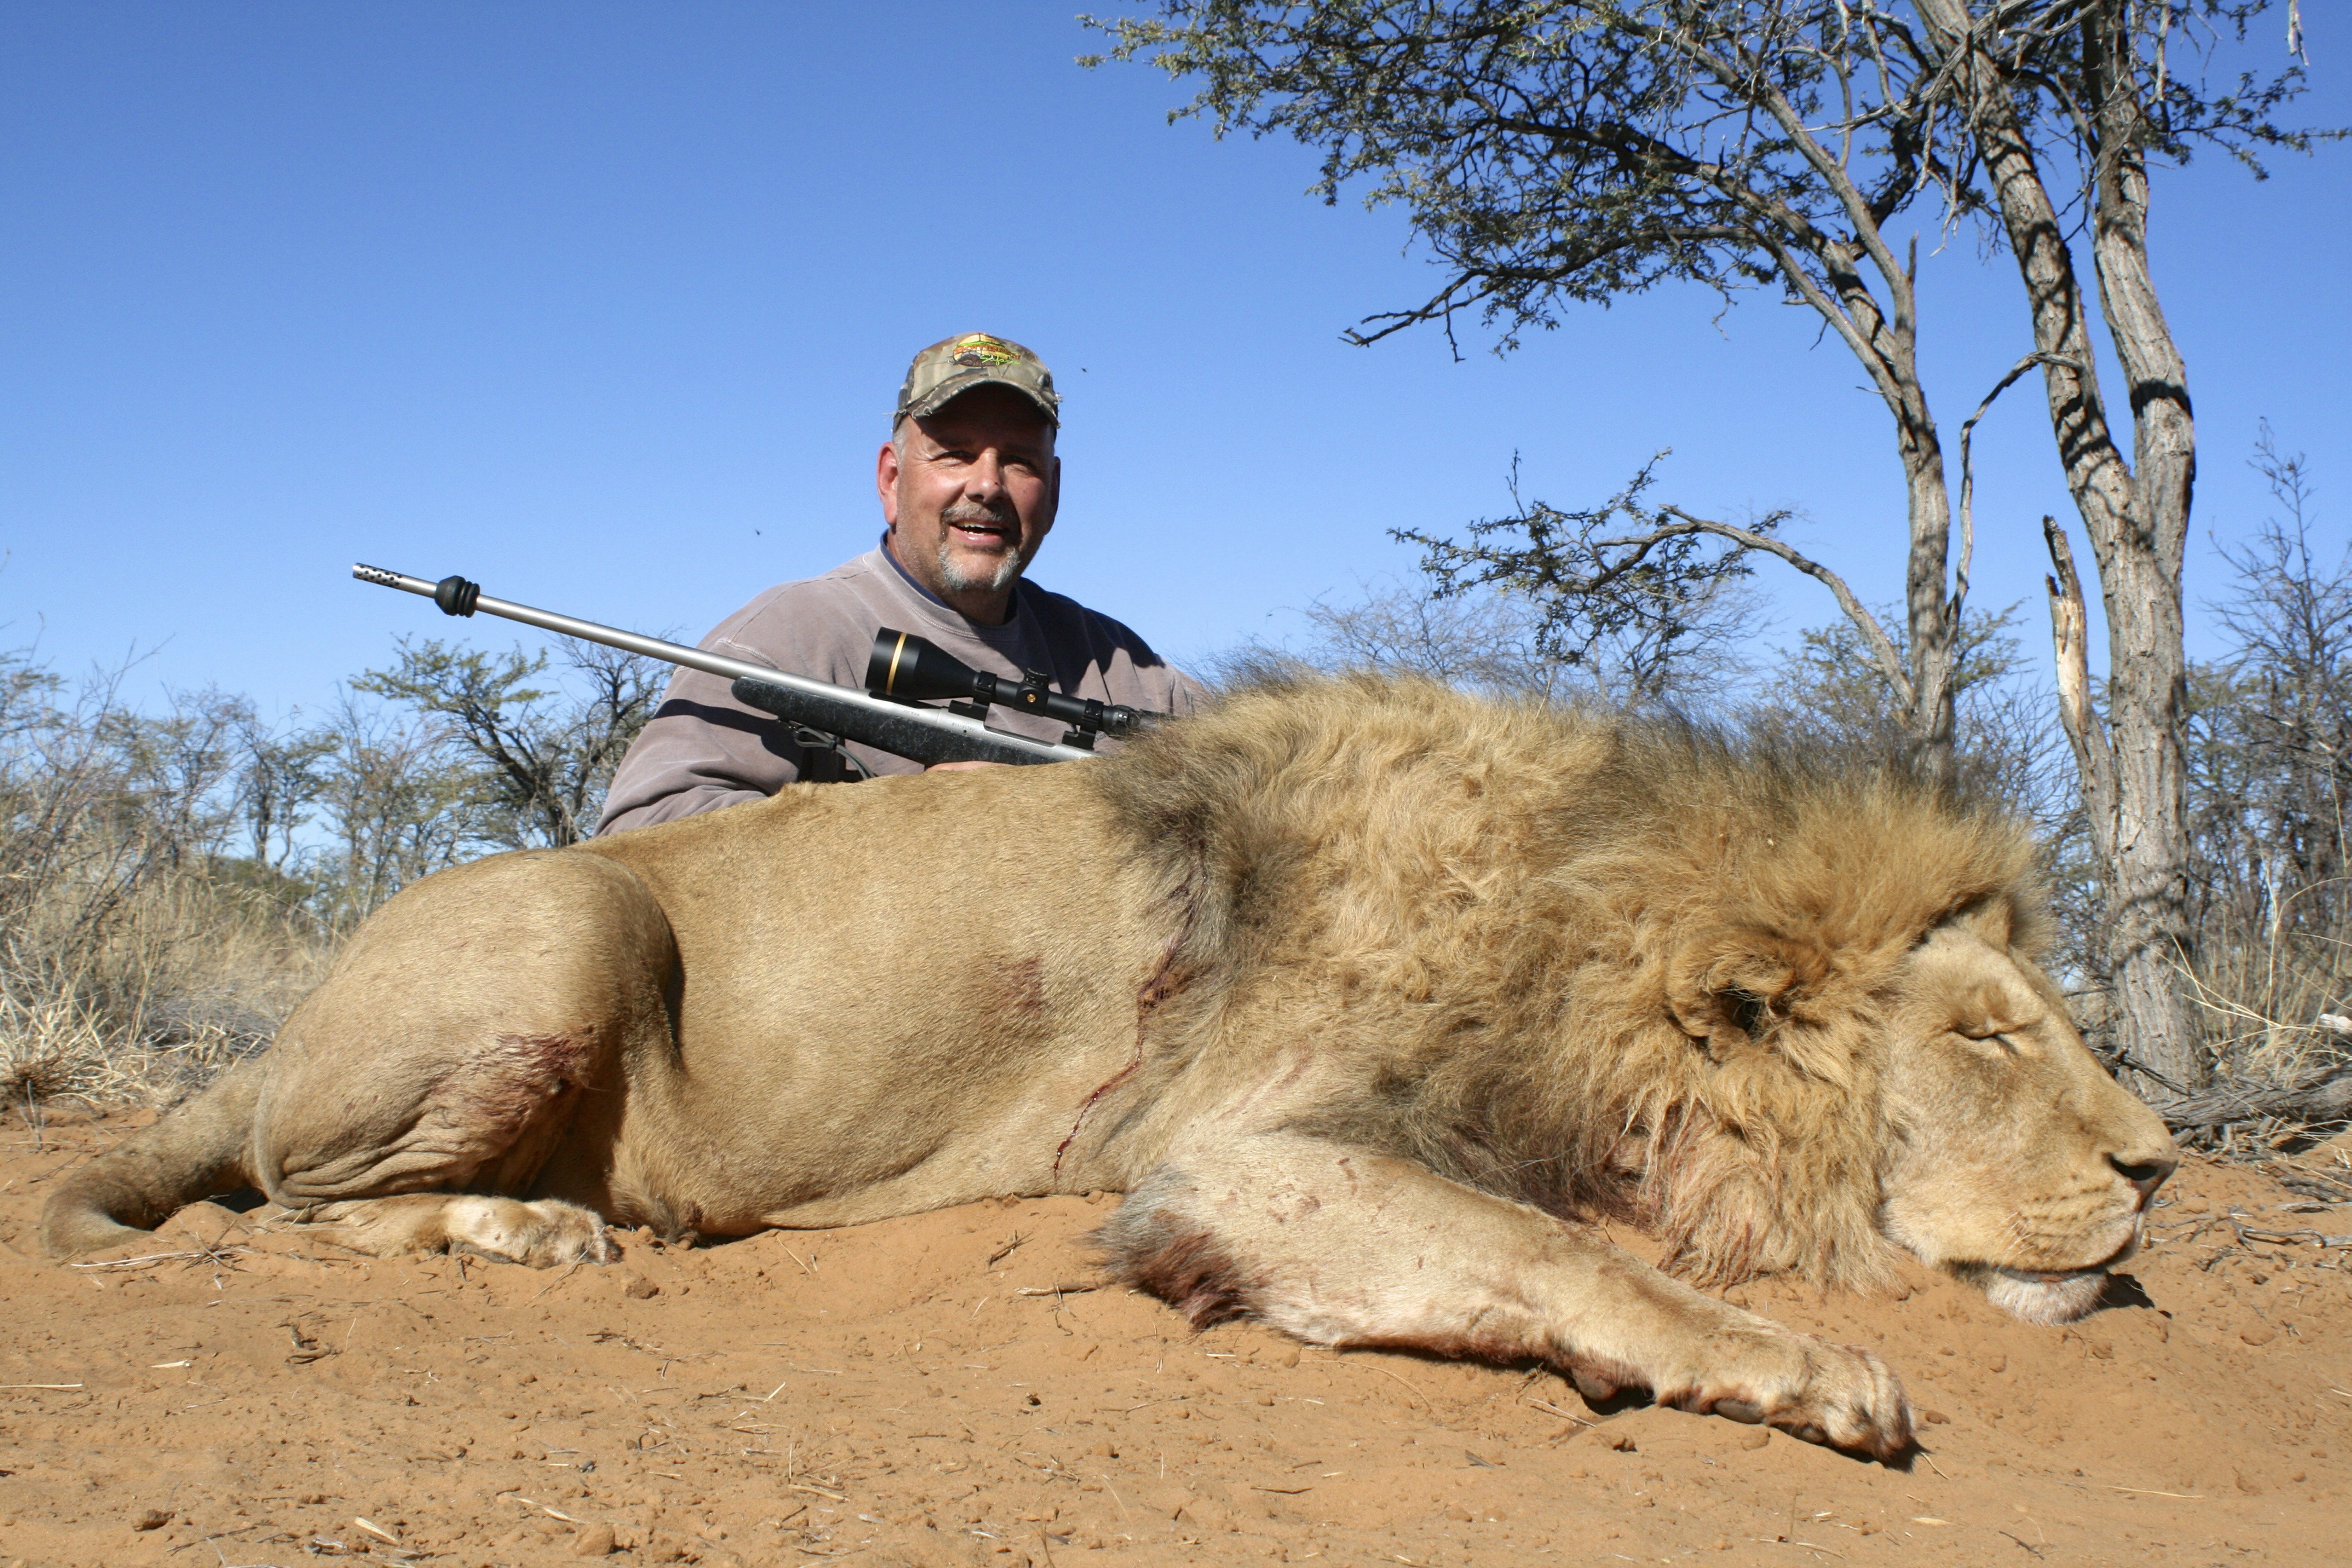 Mike Carvelli has gotten close to and with dangerous game species during recent Africa hunts.